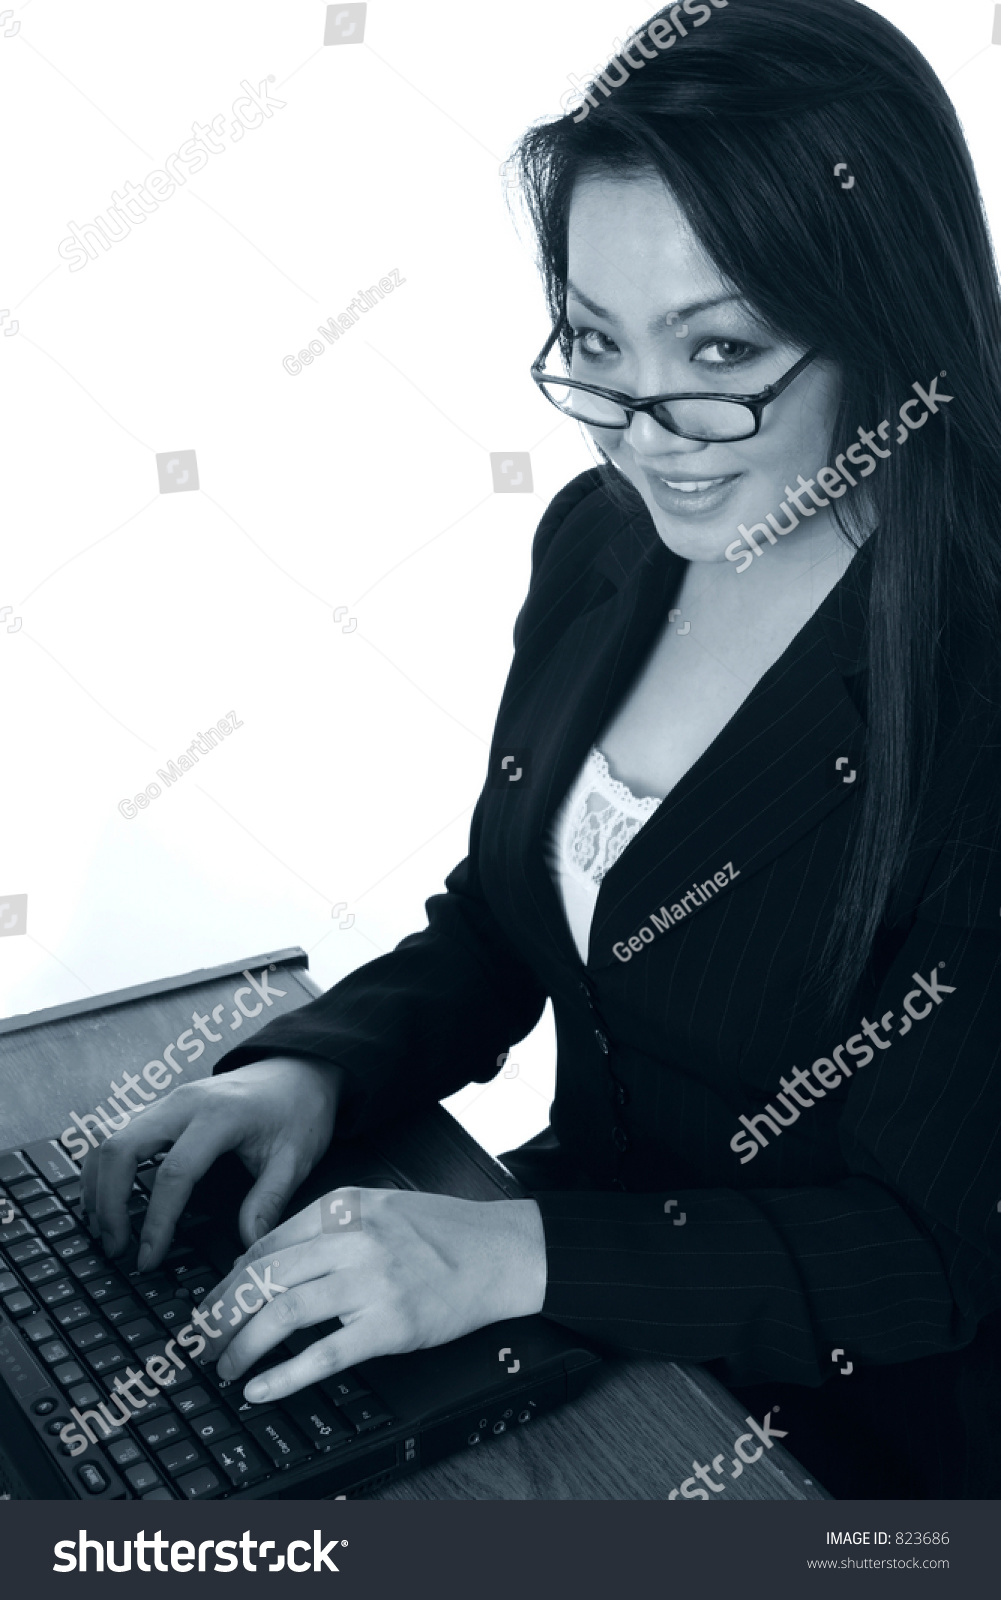 secretary typing on laptop in black and white over white background